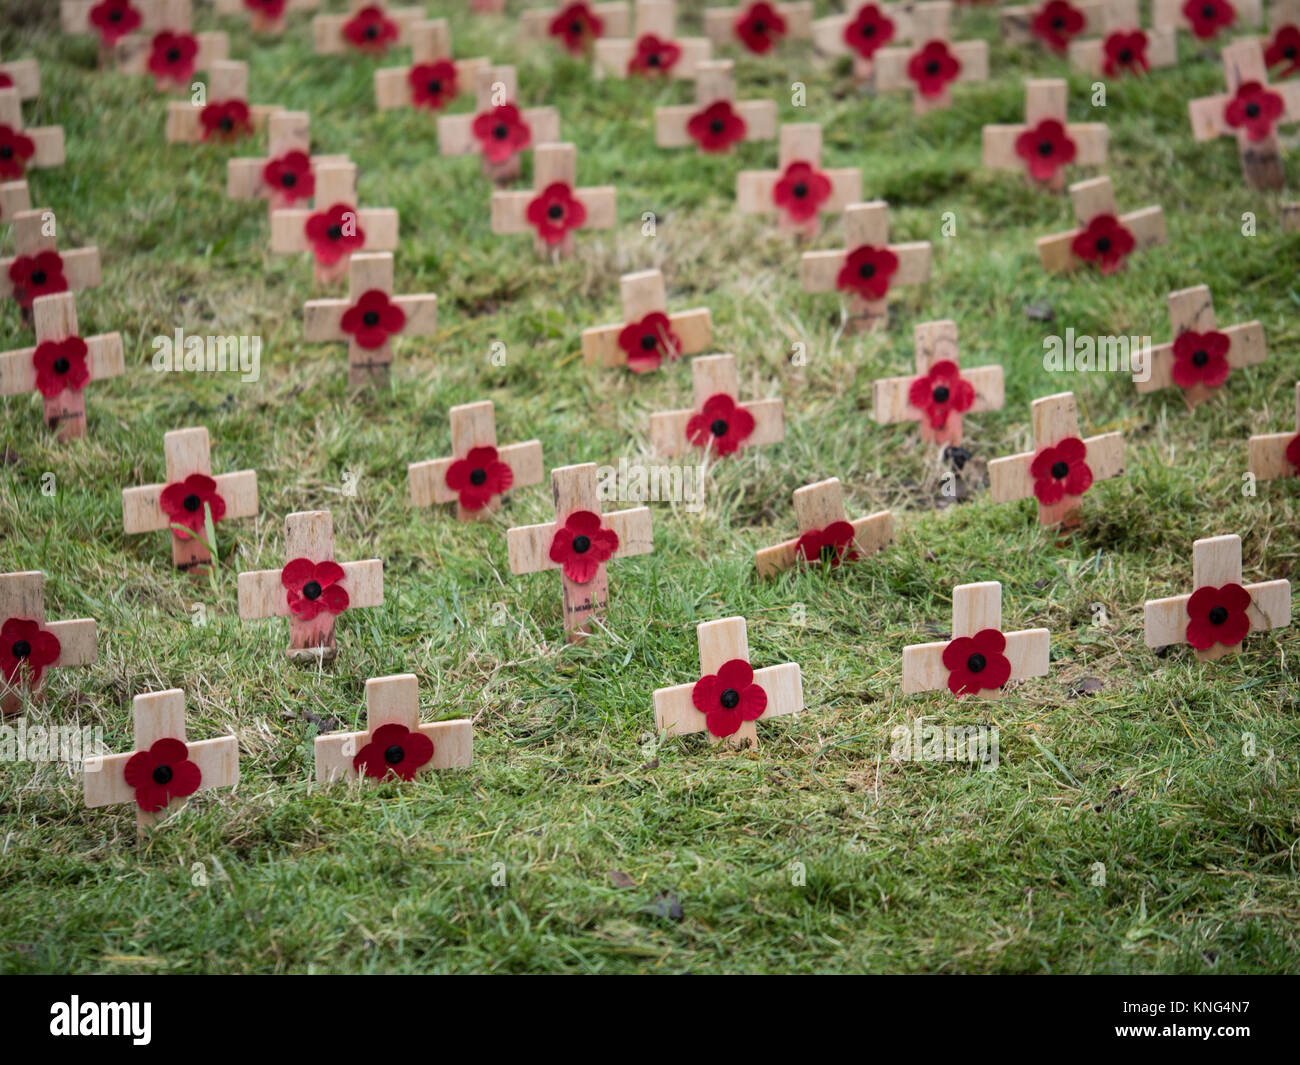 Armistice day poppies on small wooden crosses. England. UK. - Stock Image